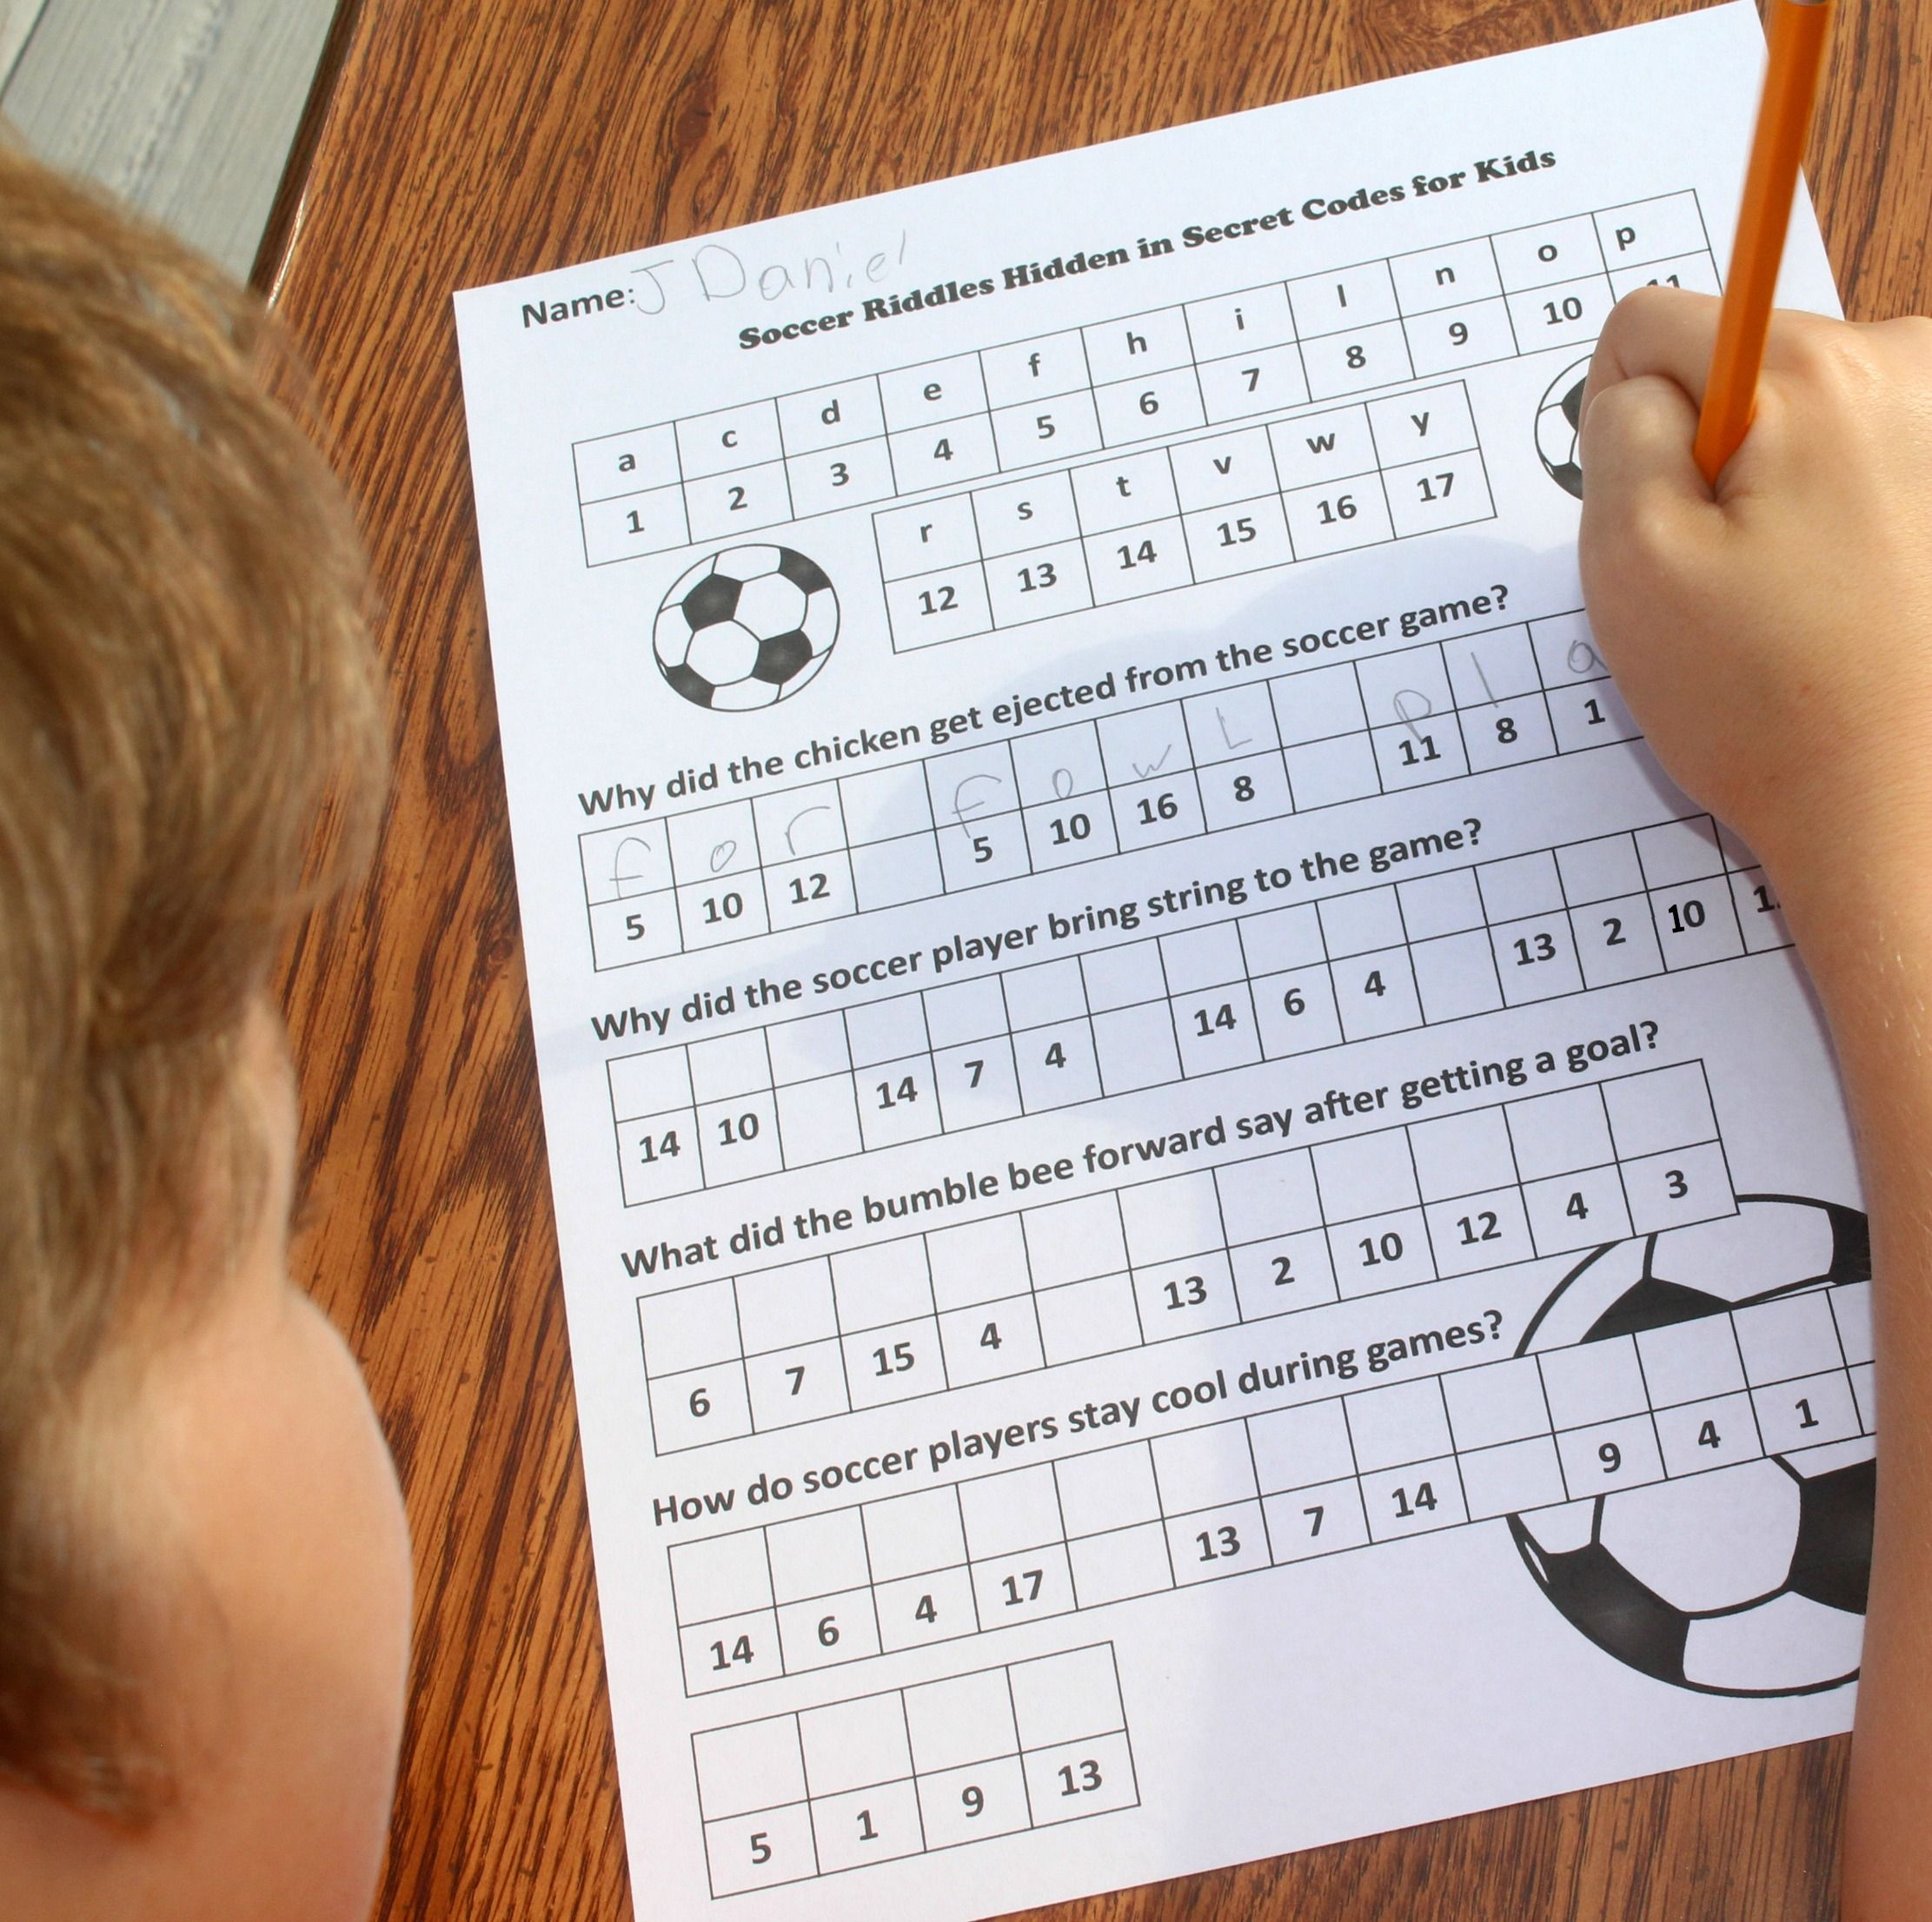 Soccer Riddles Hidden In Secret Codes For Kids Riddles